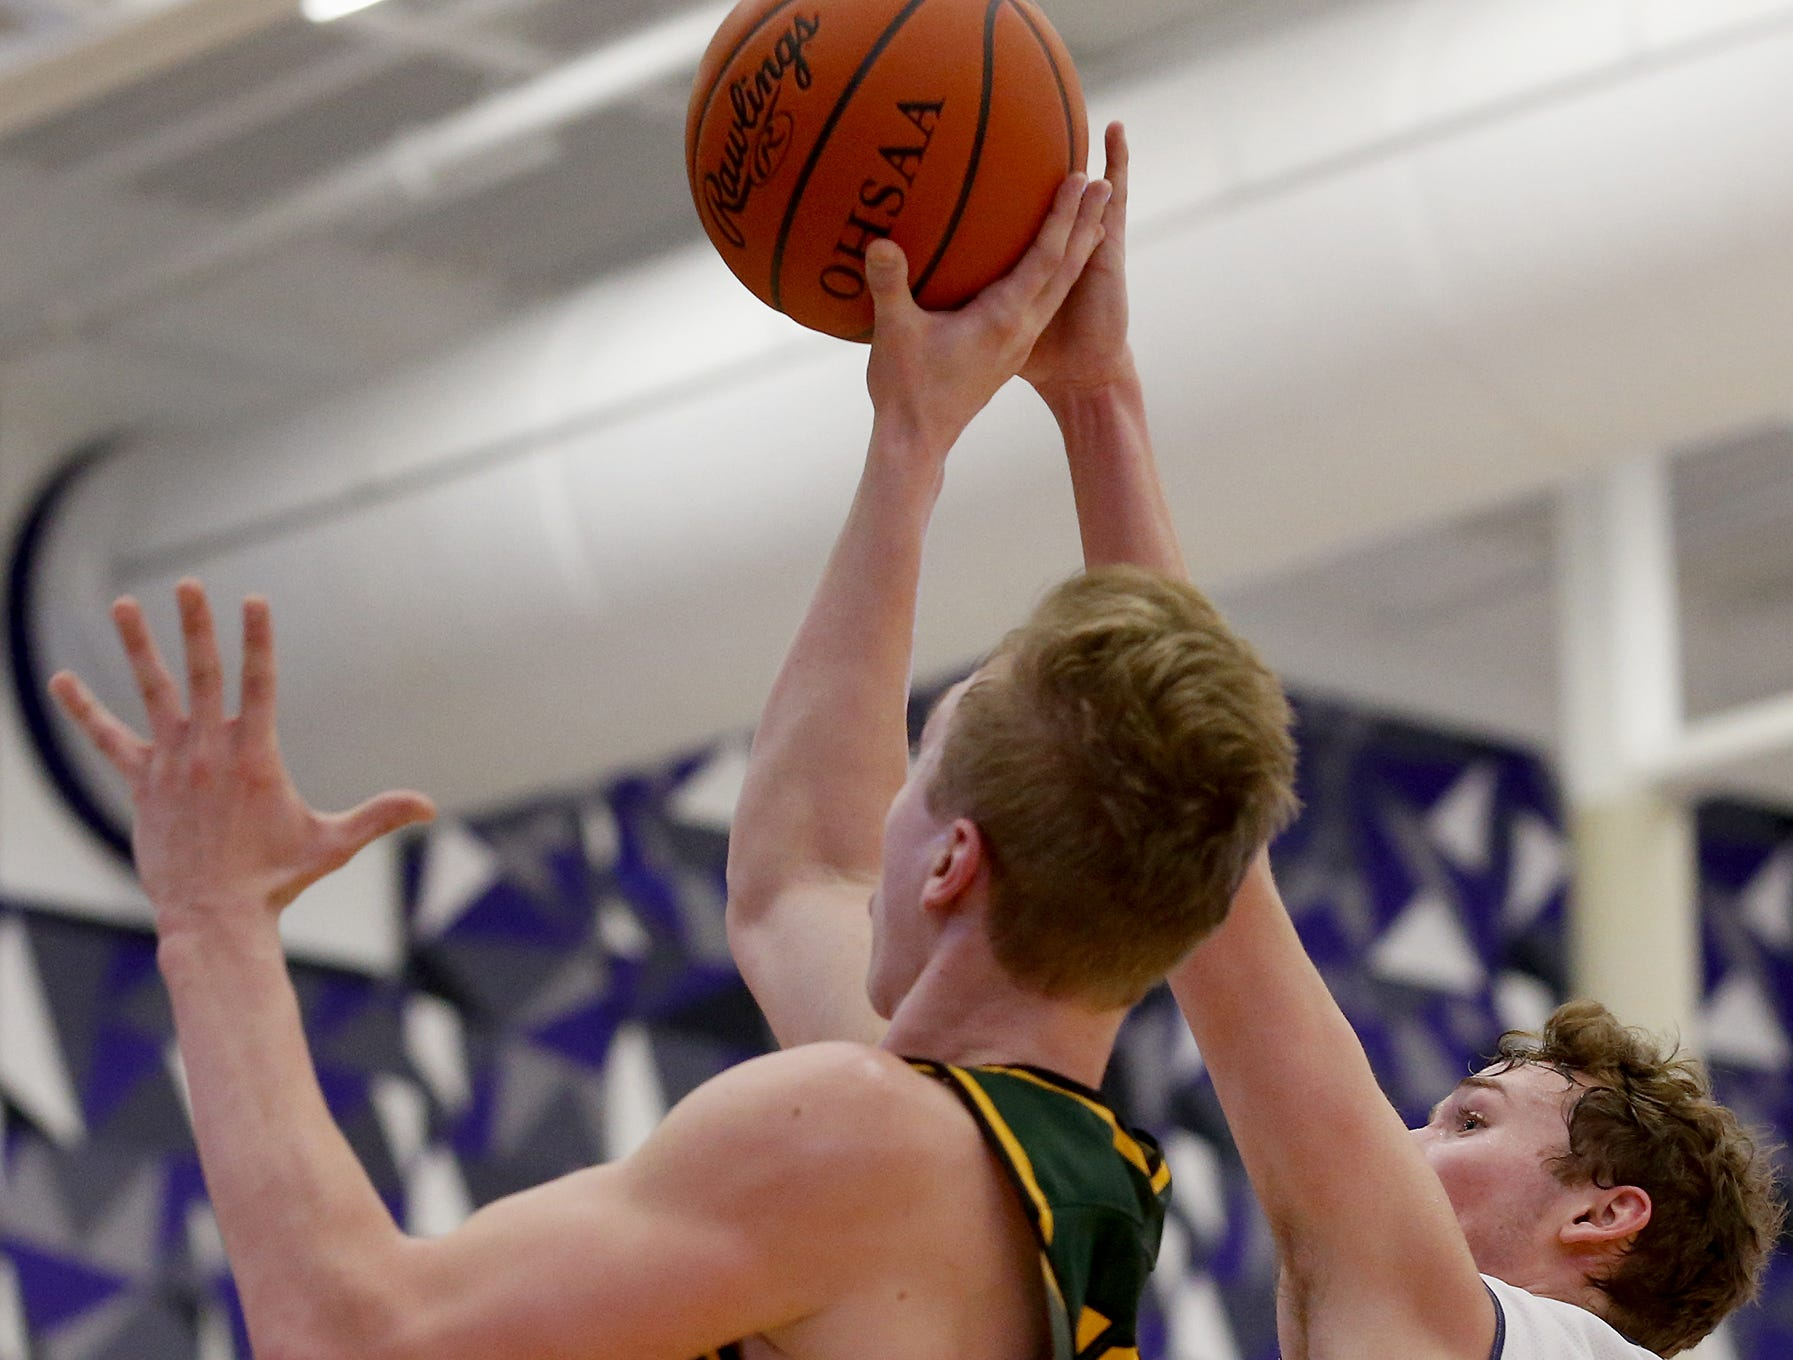 Cincinnati Hills Christian Academy point guard Austin Arthurs blocks the shot of Sycamore guard Ben Yuskewich during the Midwest King Classic at Jerry Lucas Court in Wade E. Miller Arena in Middletown Saturday, Jan. 19, 2019.